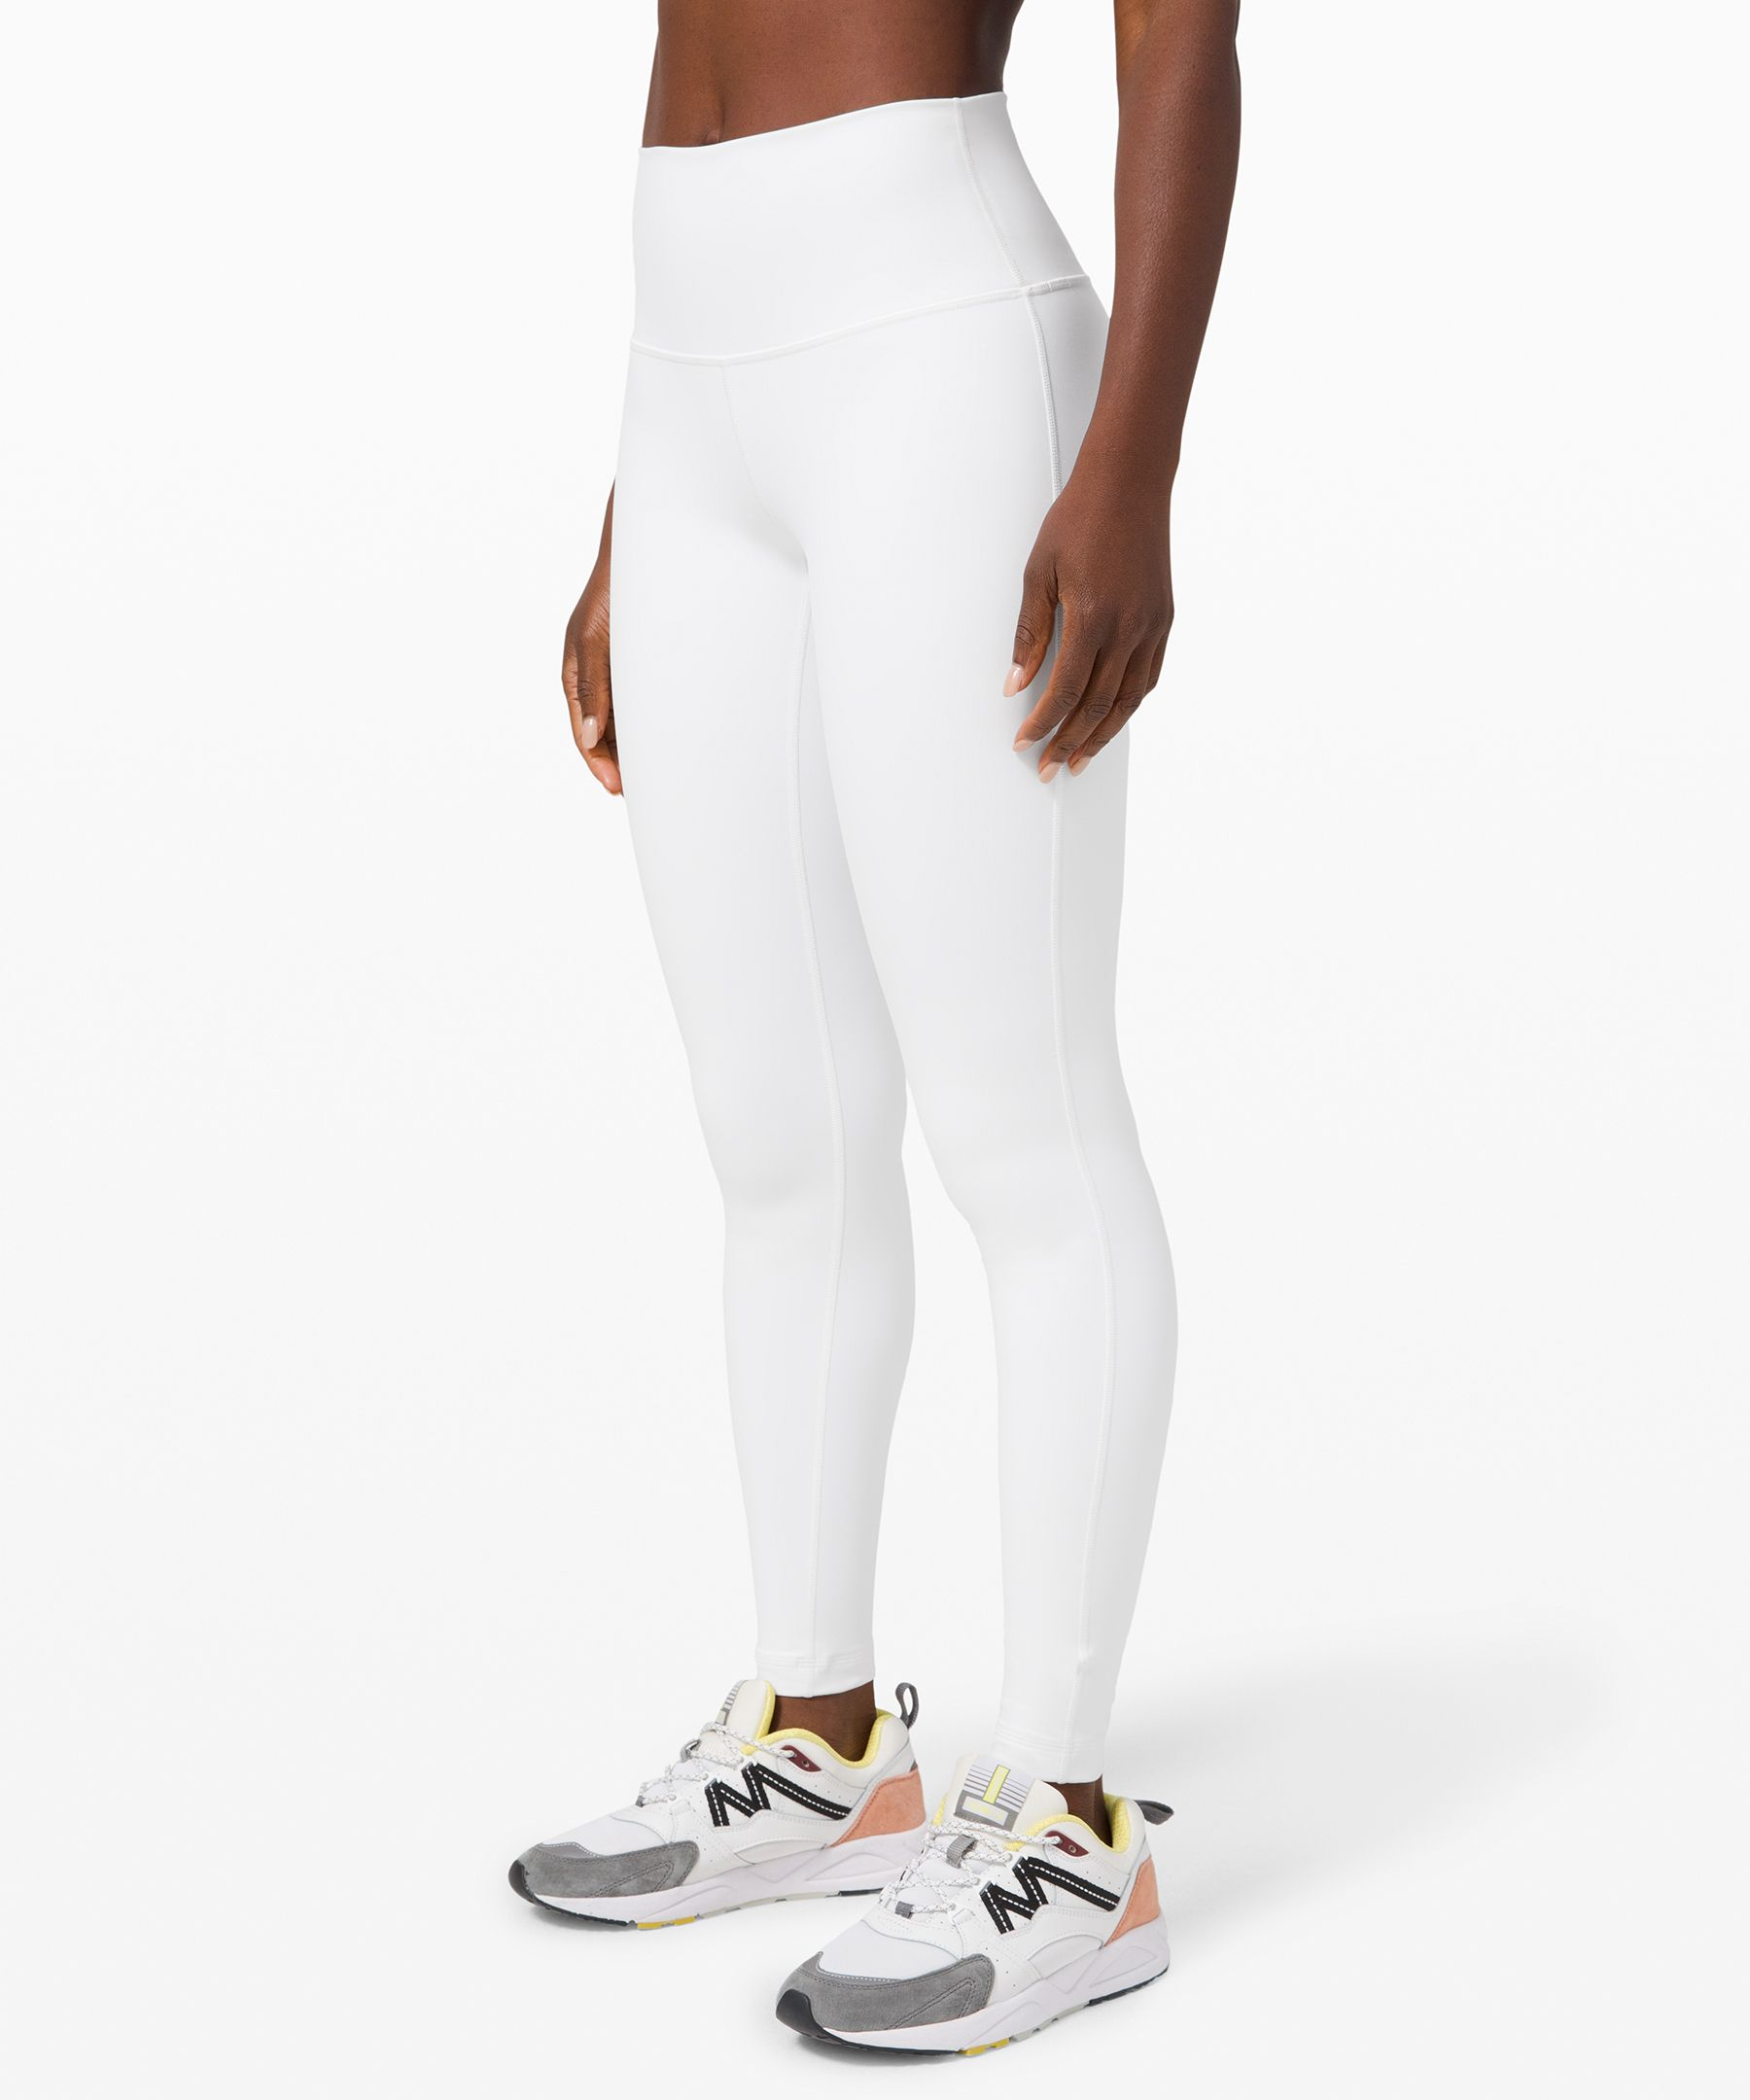 Women S White Leggings Lululemon